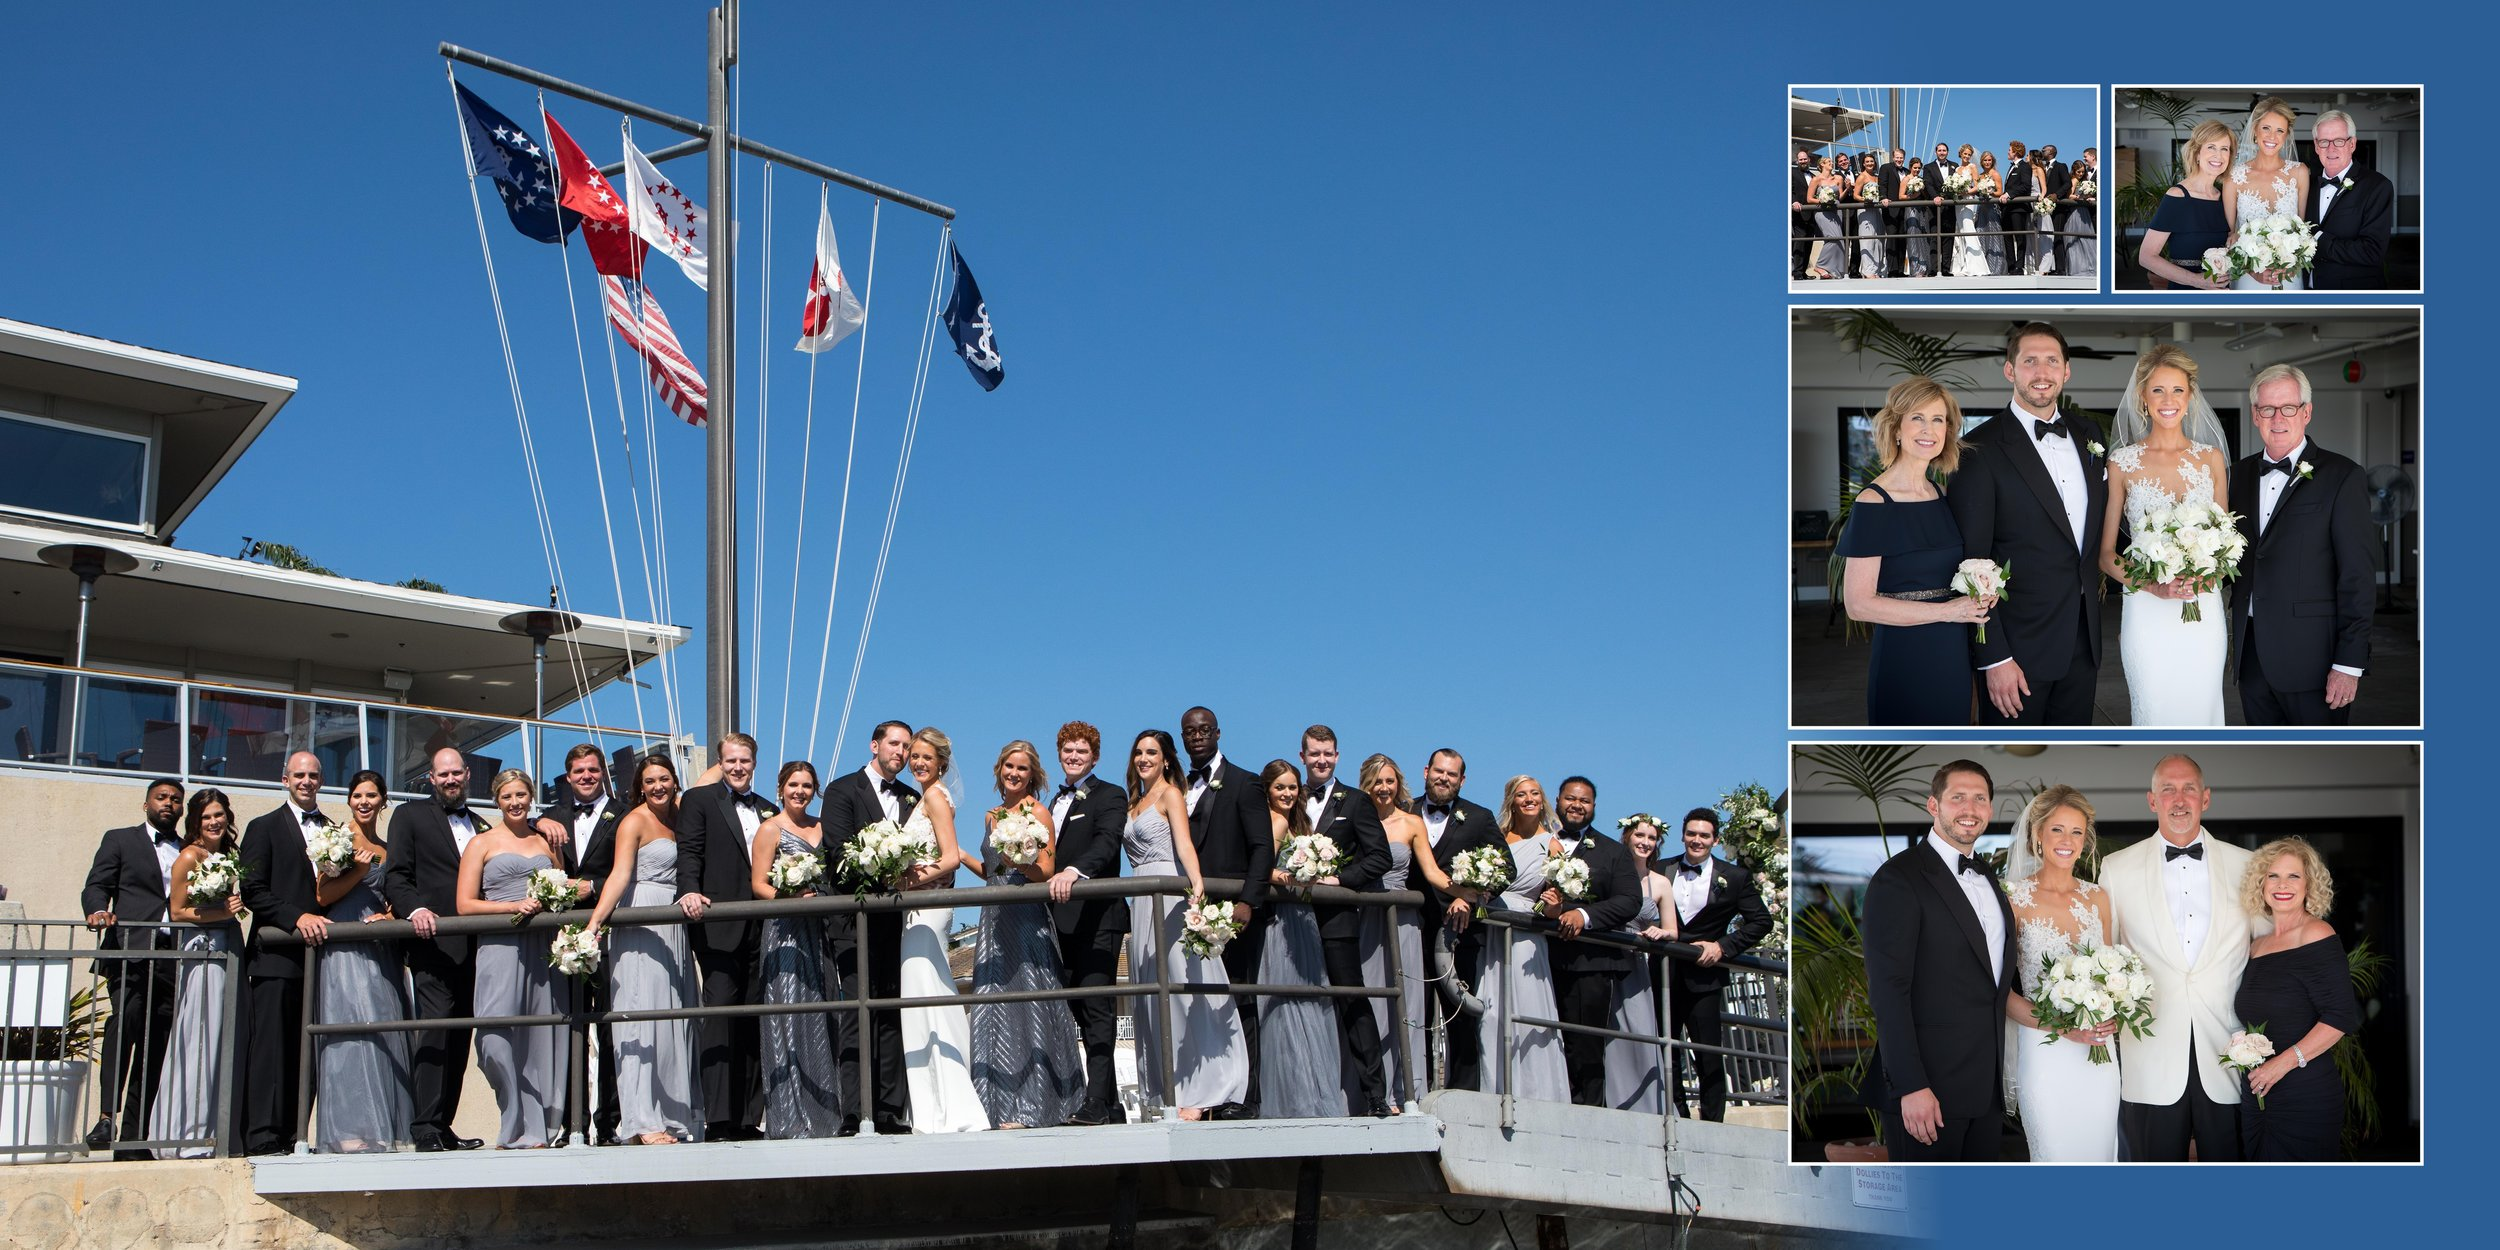 Yacht Club Wedding - Newport Beach, California